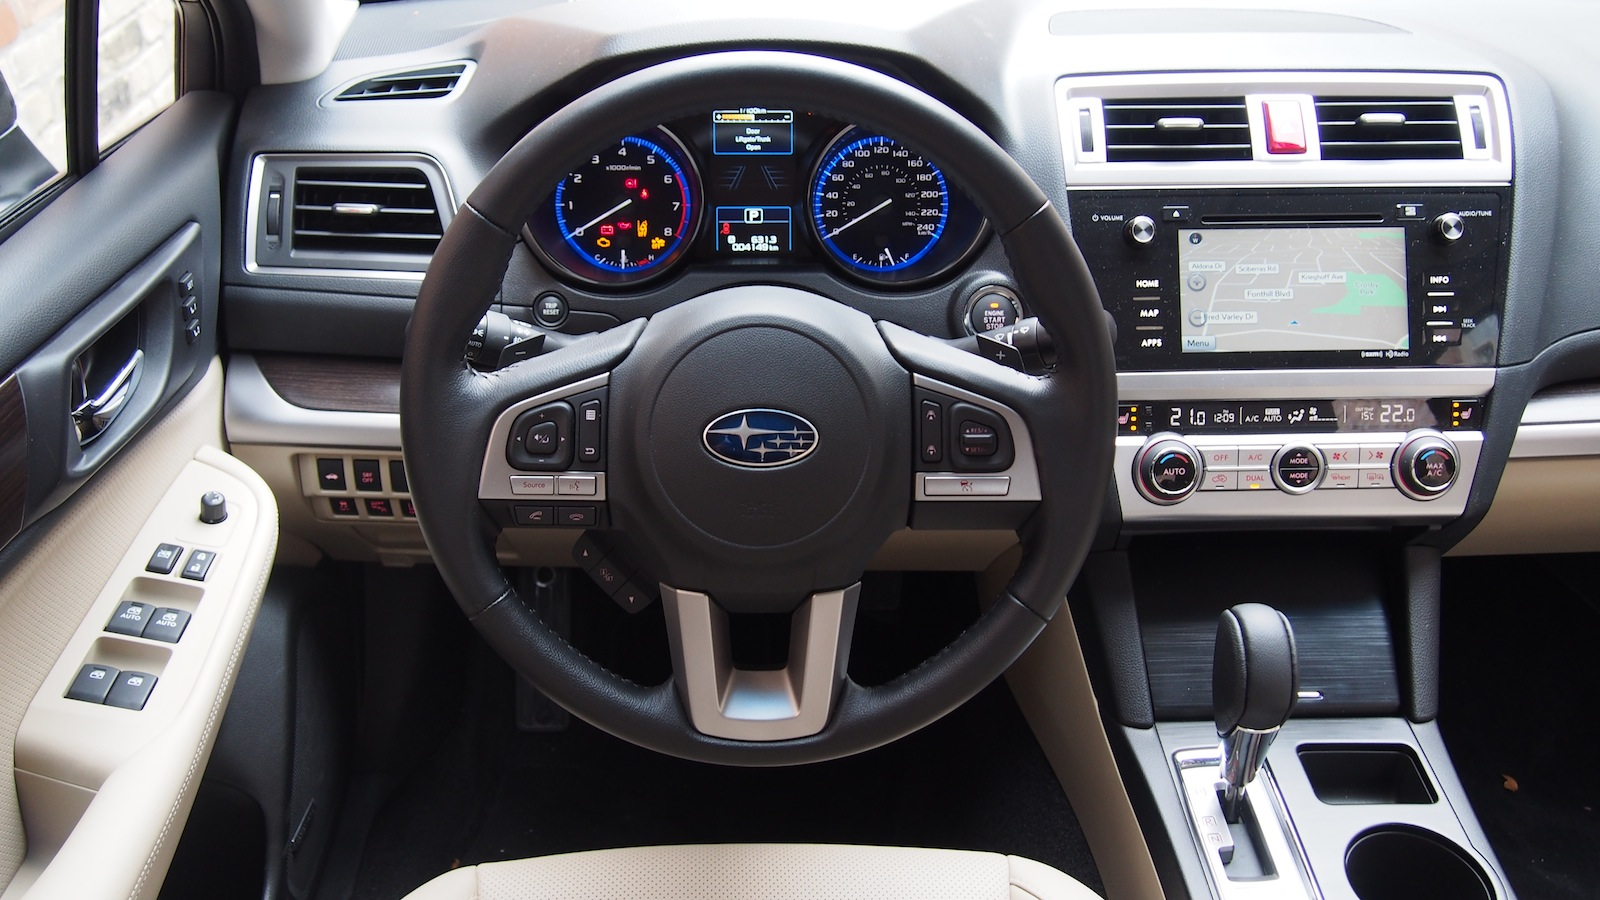 Subaru Brz Sti Price >> Review: 2015 Subaru Legacy 2.5i Limited | Canadian Auto Review